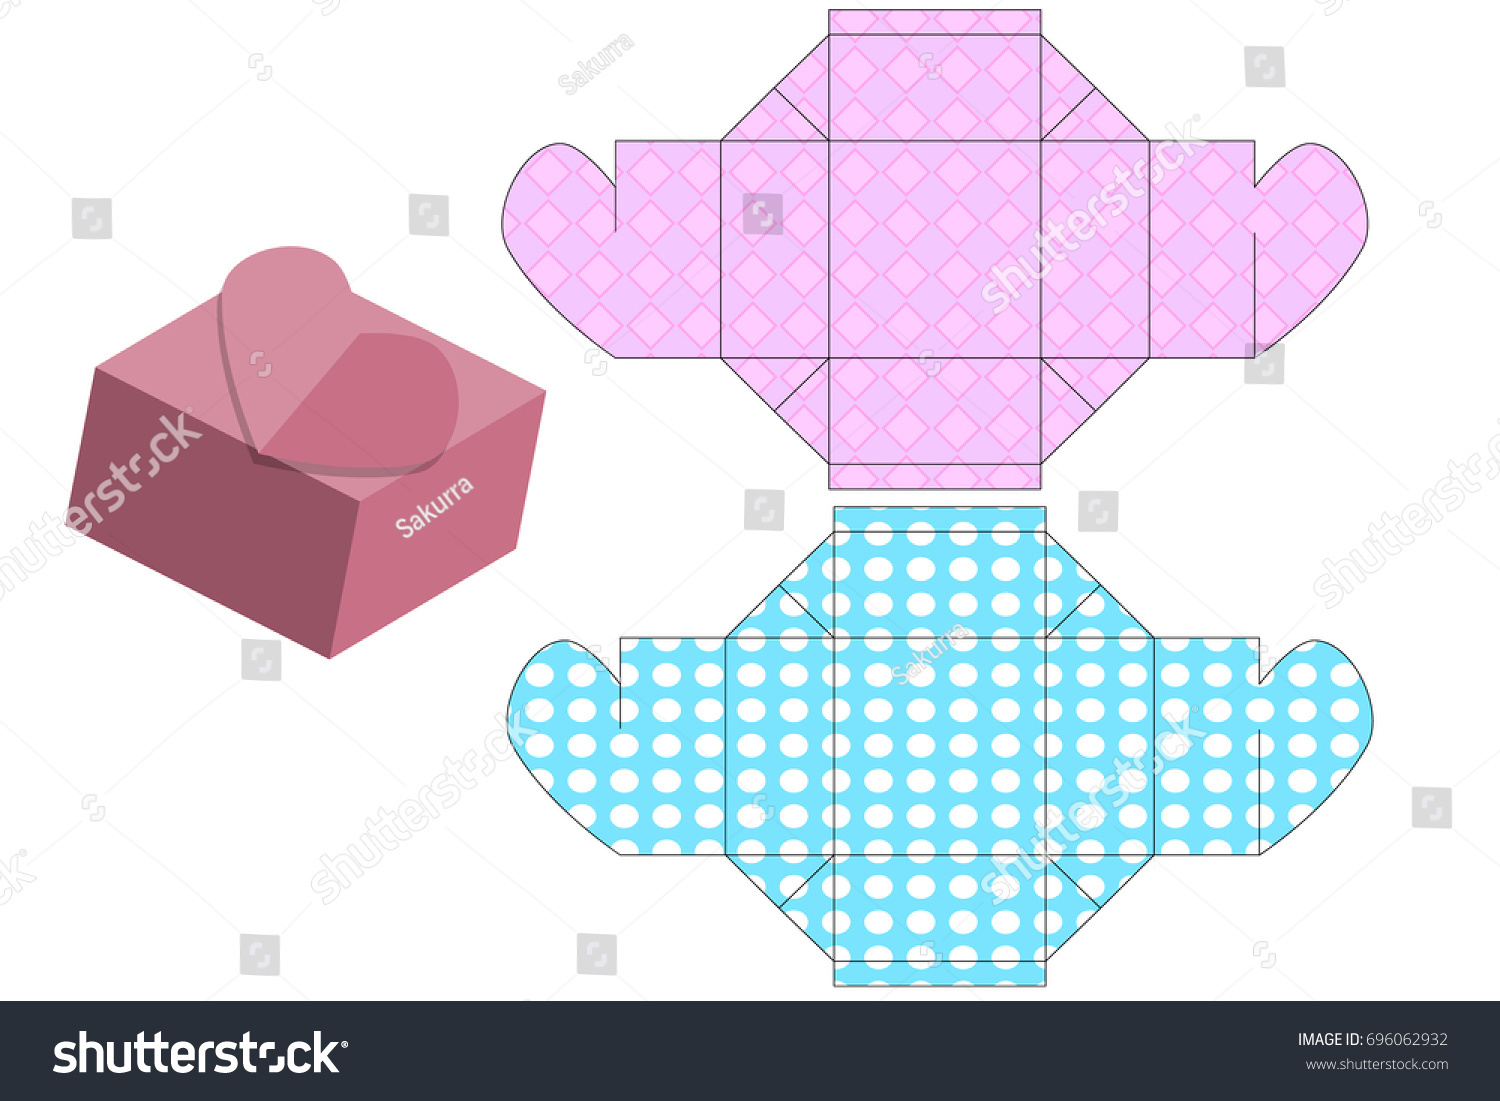 Printable Templates Gift Boxes Bags Things Vector 696062932 – Templates for Gift Boxes